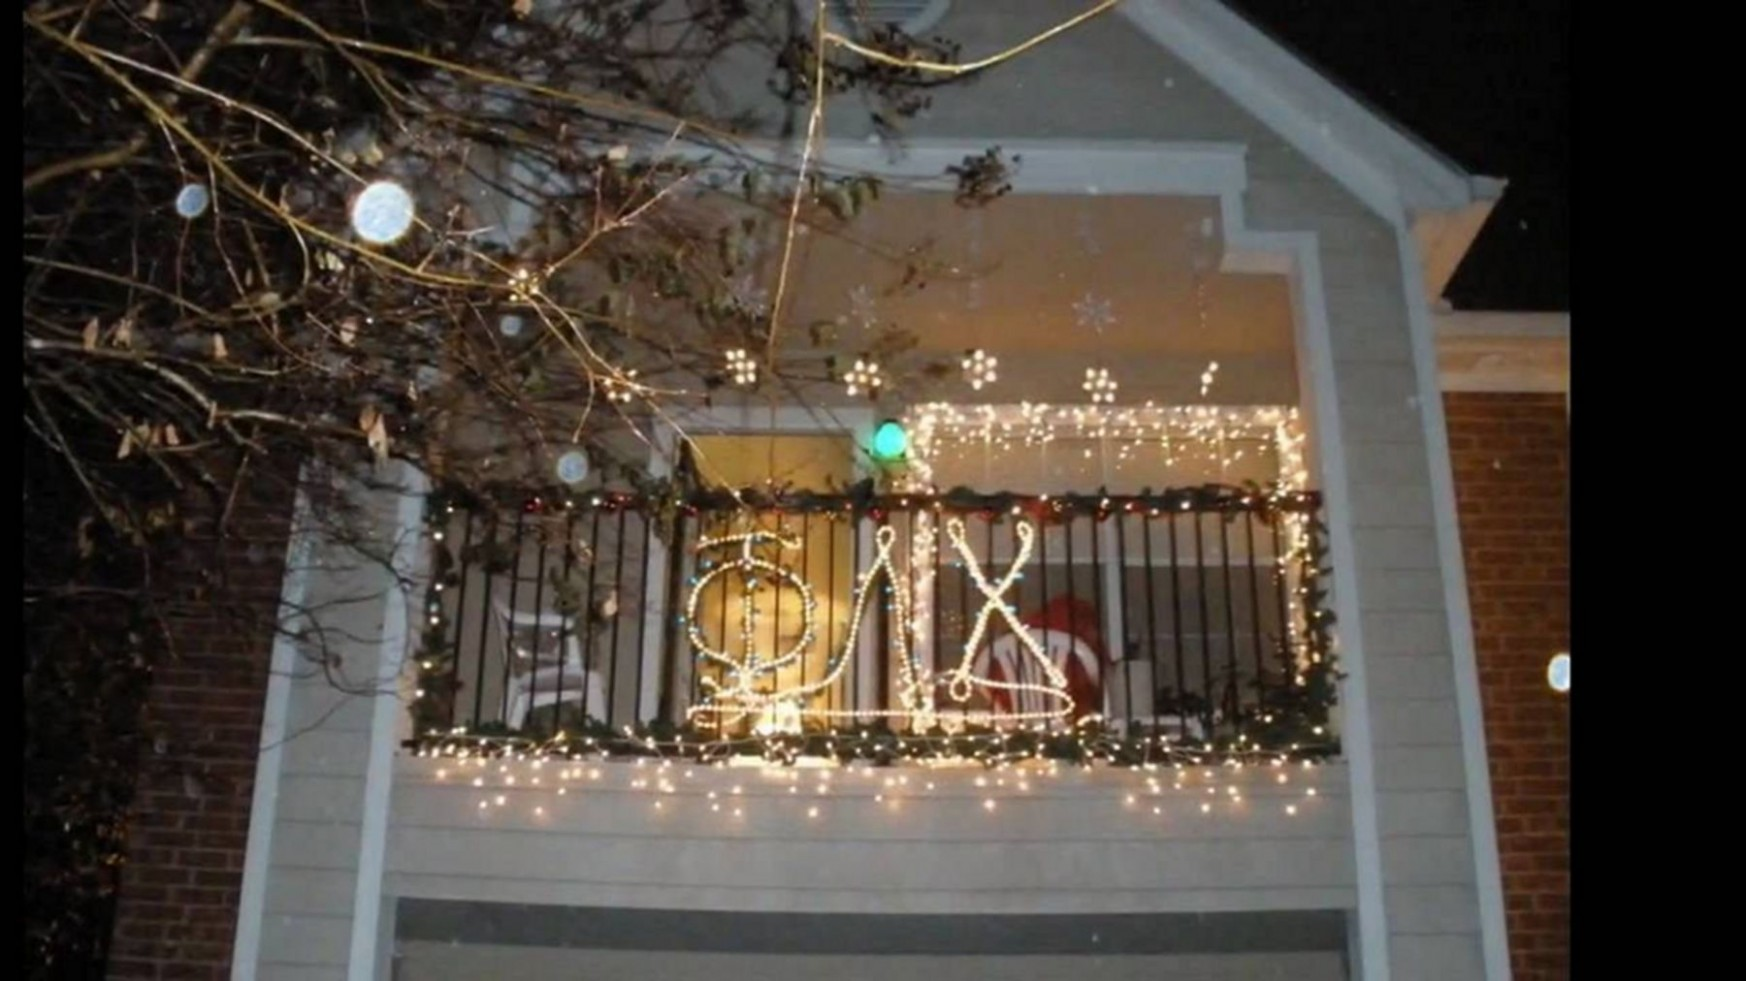 The Best 11 Cool Christmas Lights Decorating Ideas For Balcony  - Apartment Balcony Decorating Ideas Christmas